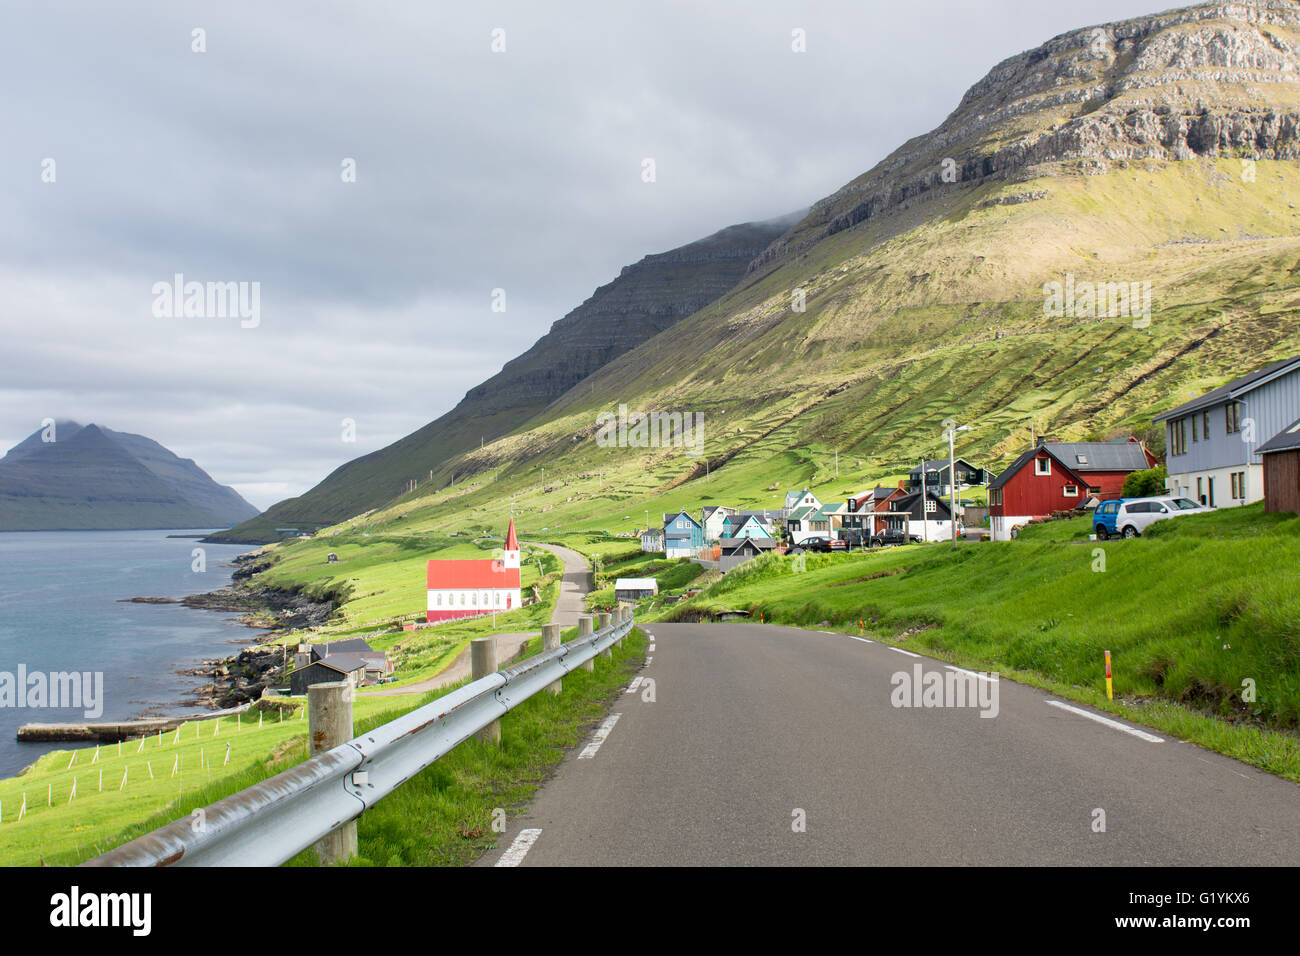 The village Husar on the Faroe Islands as seen from the road - Stock Image